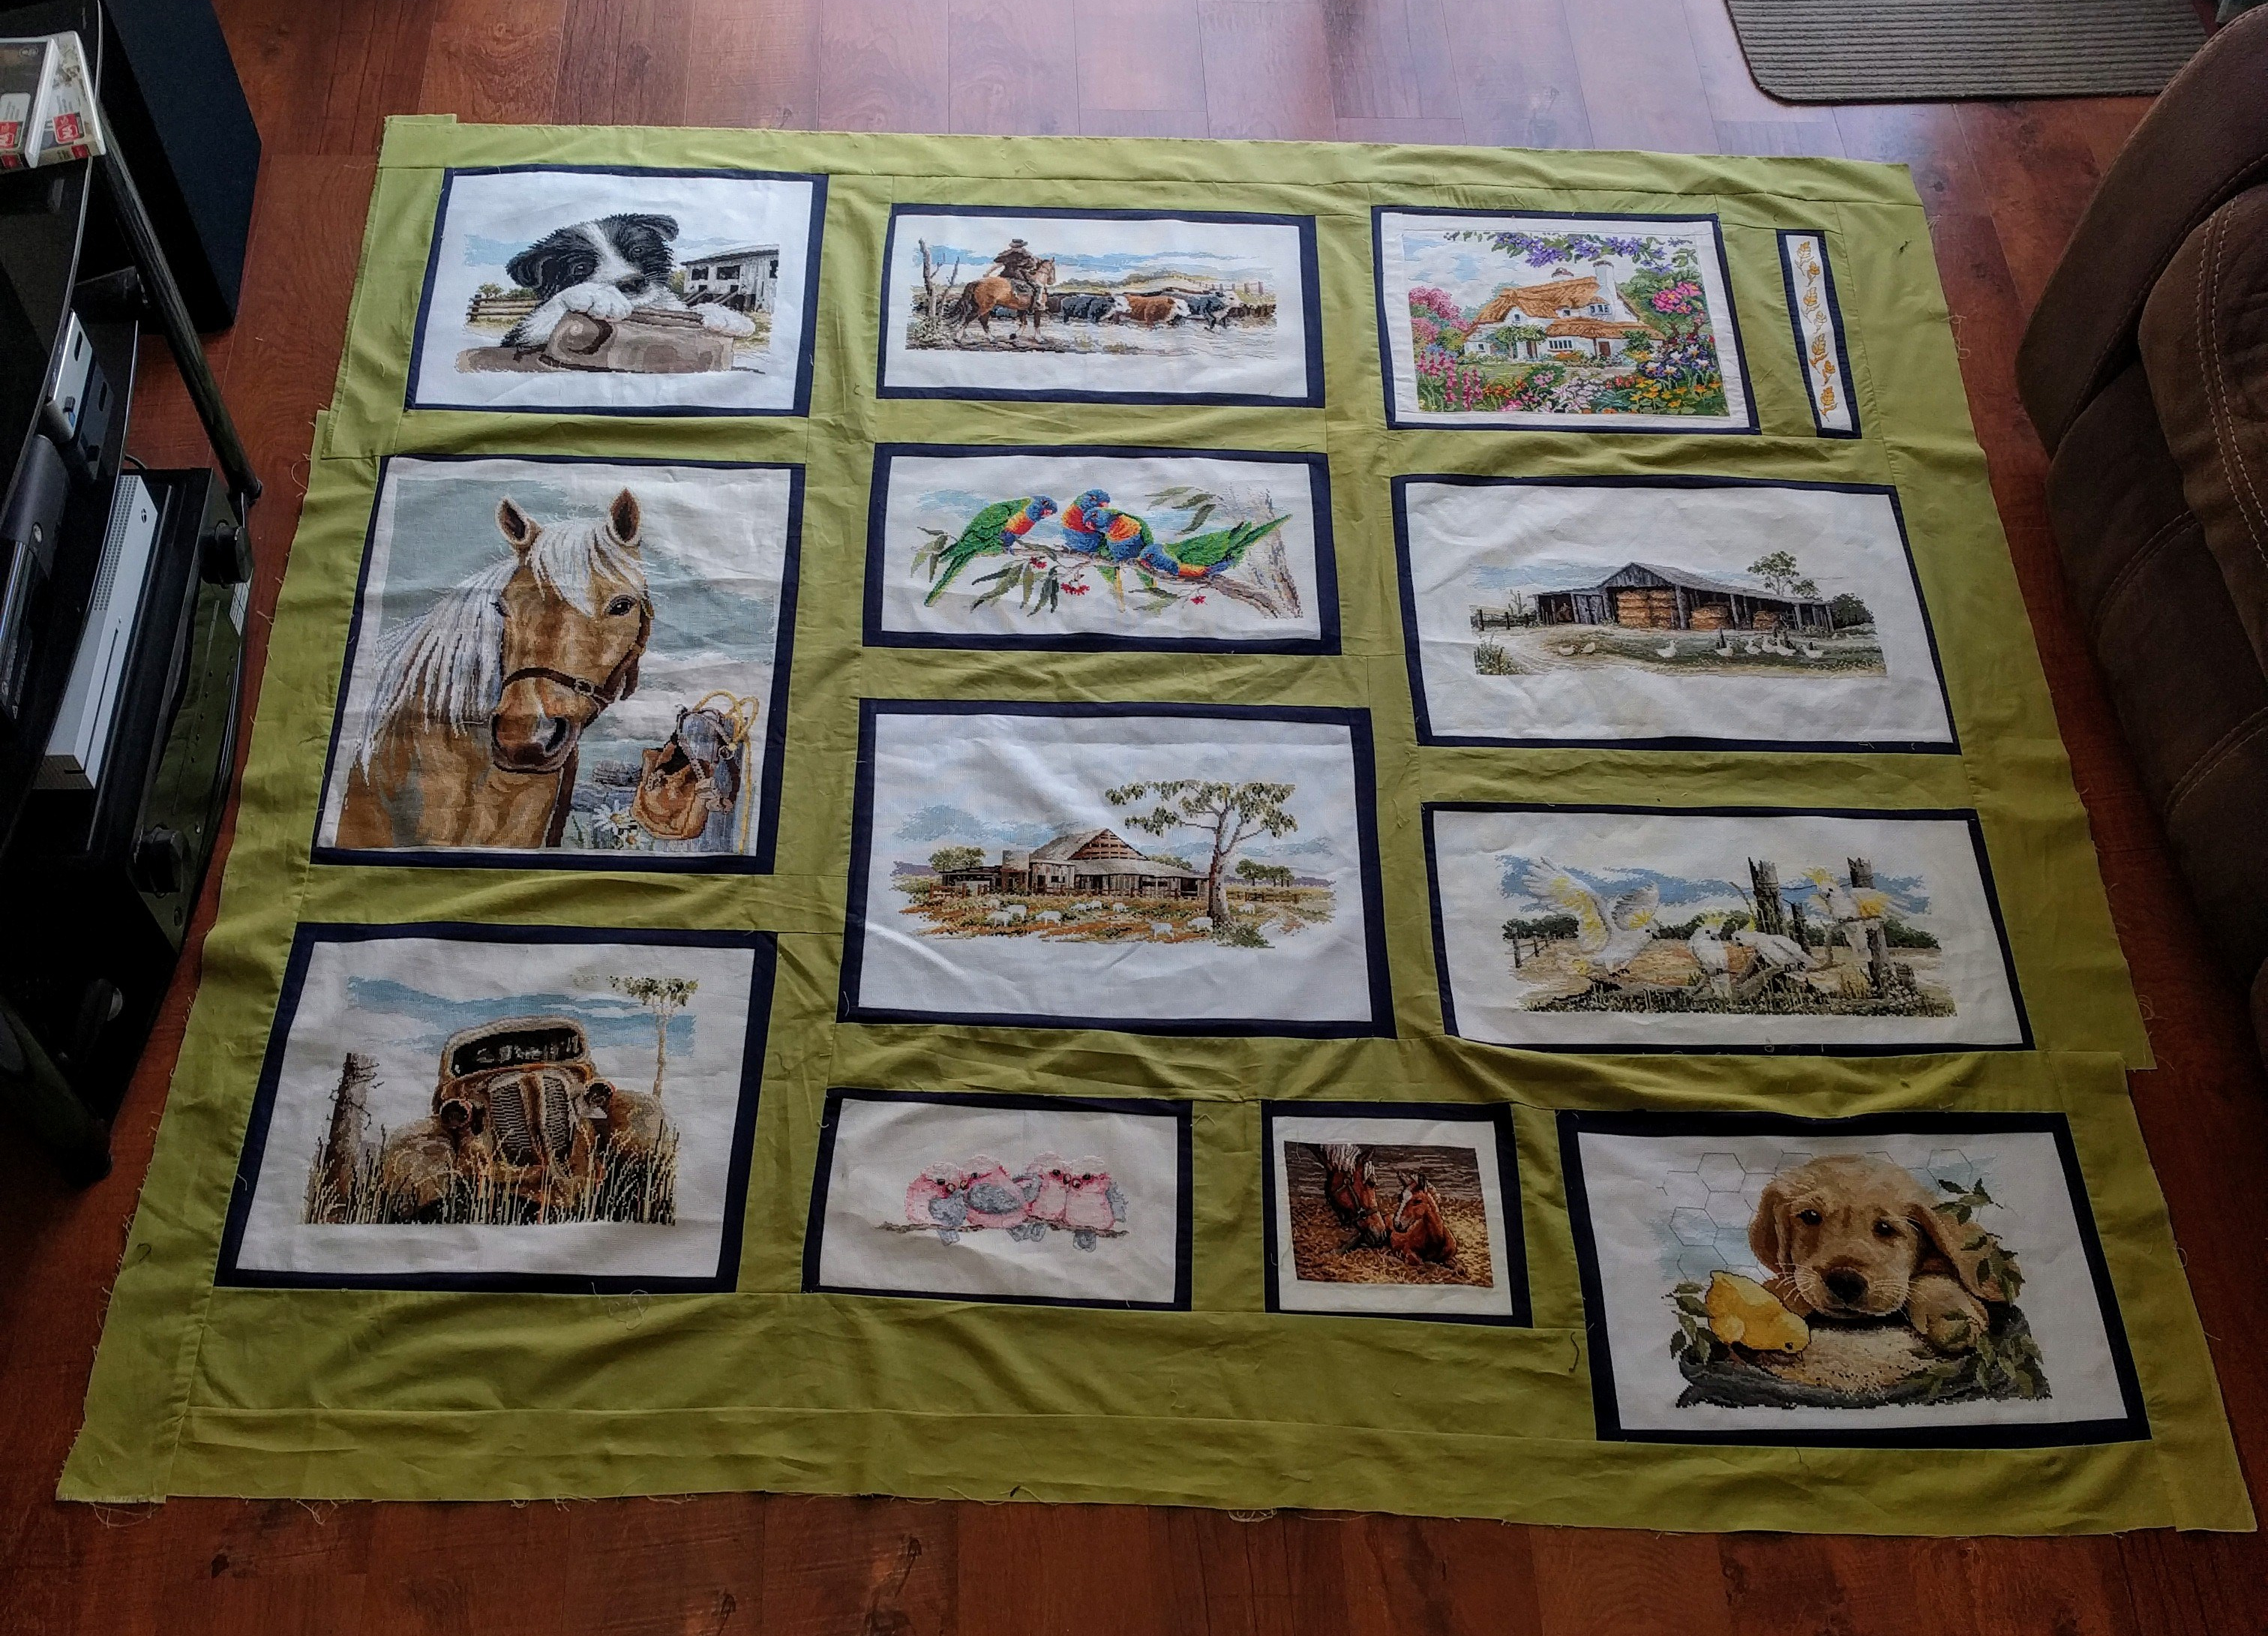 Quilt progress as of 3rd February 2019.